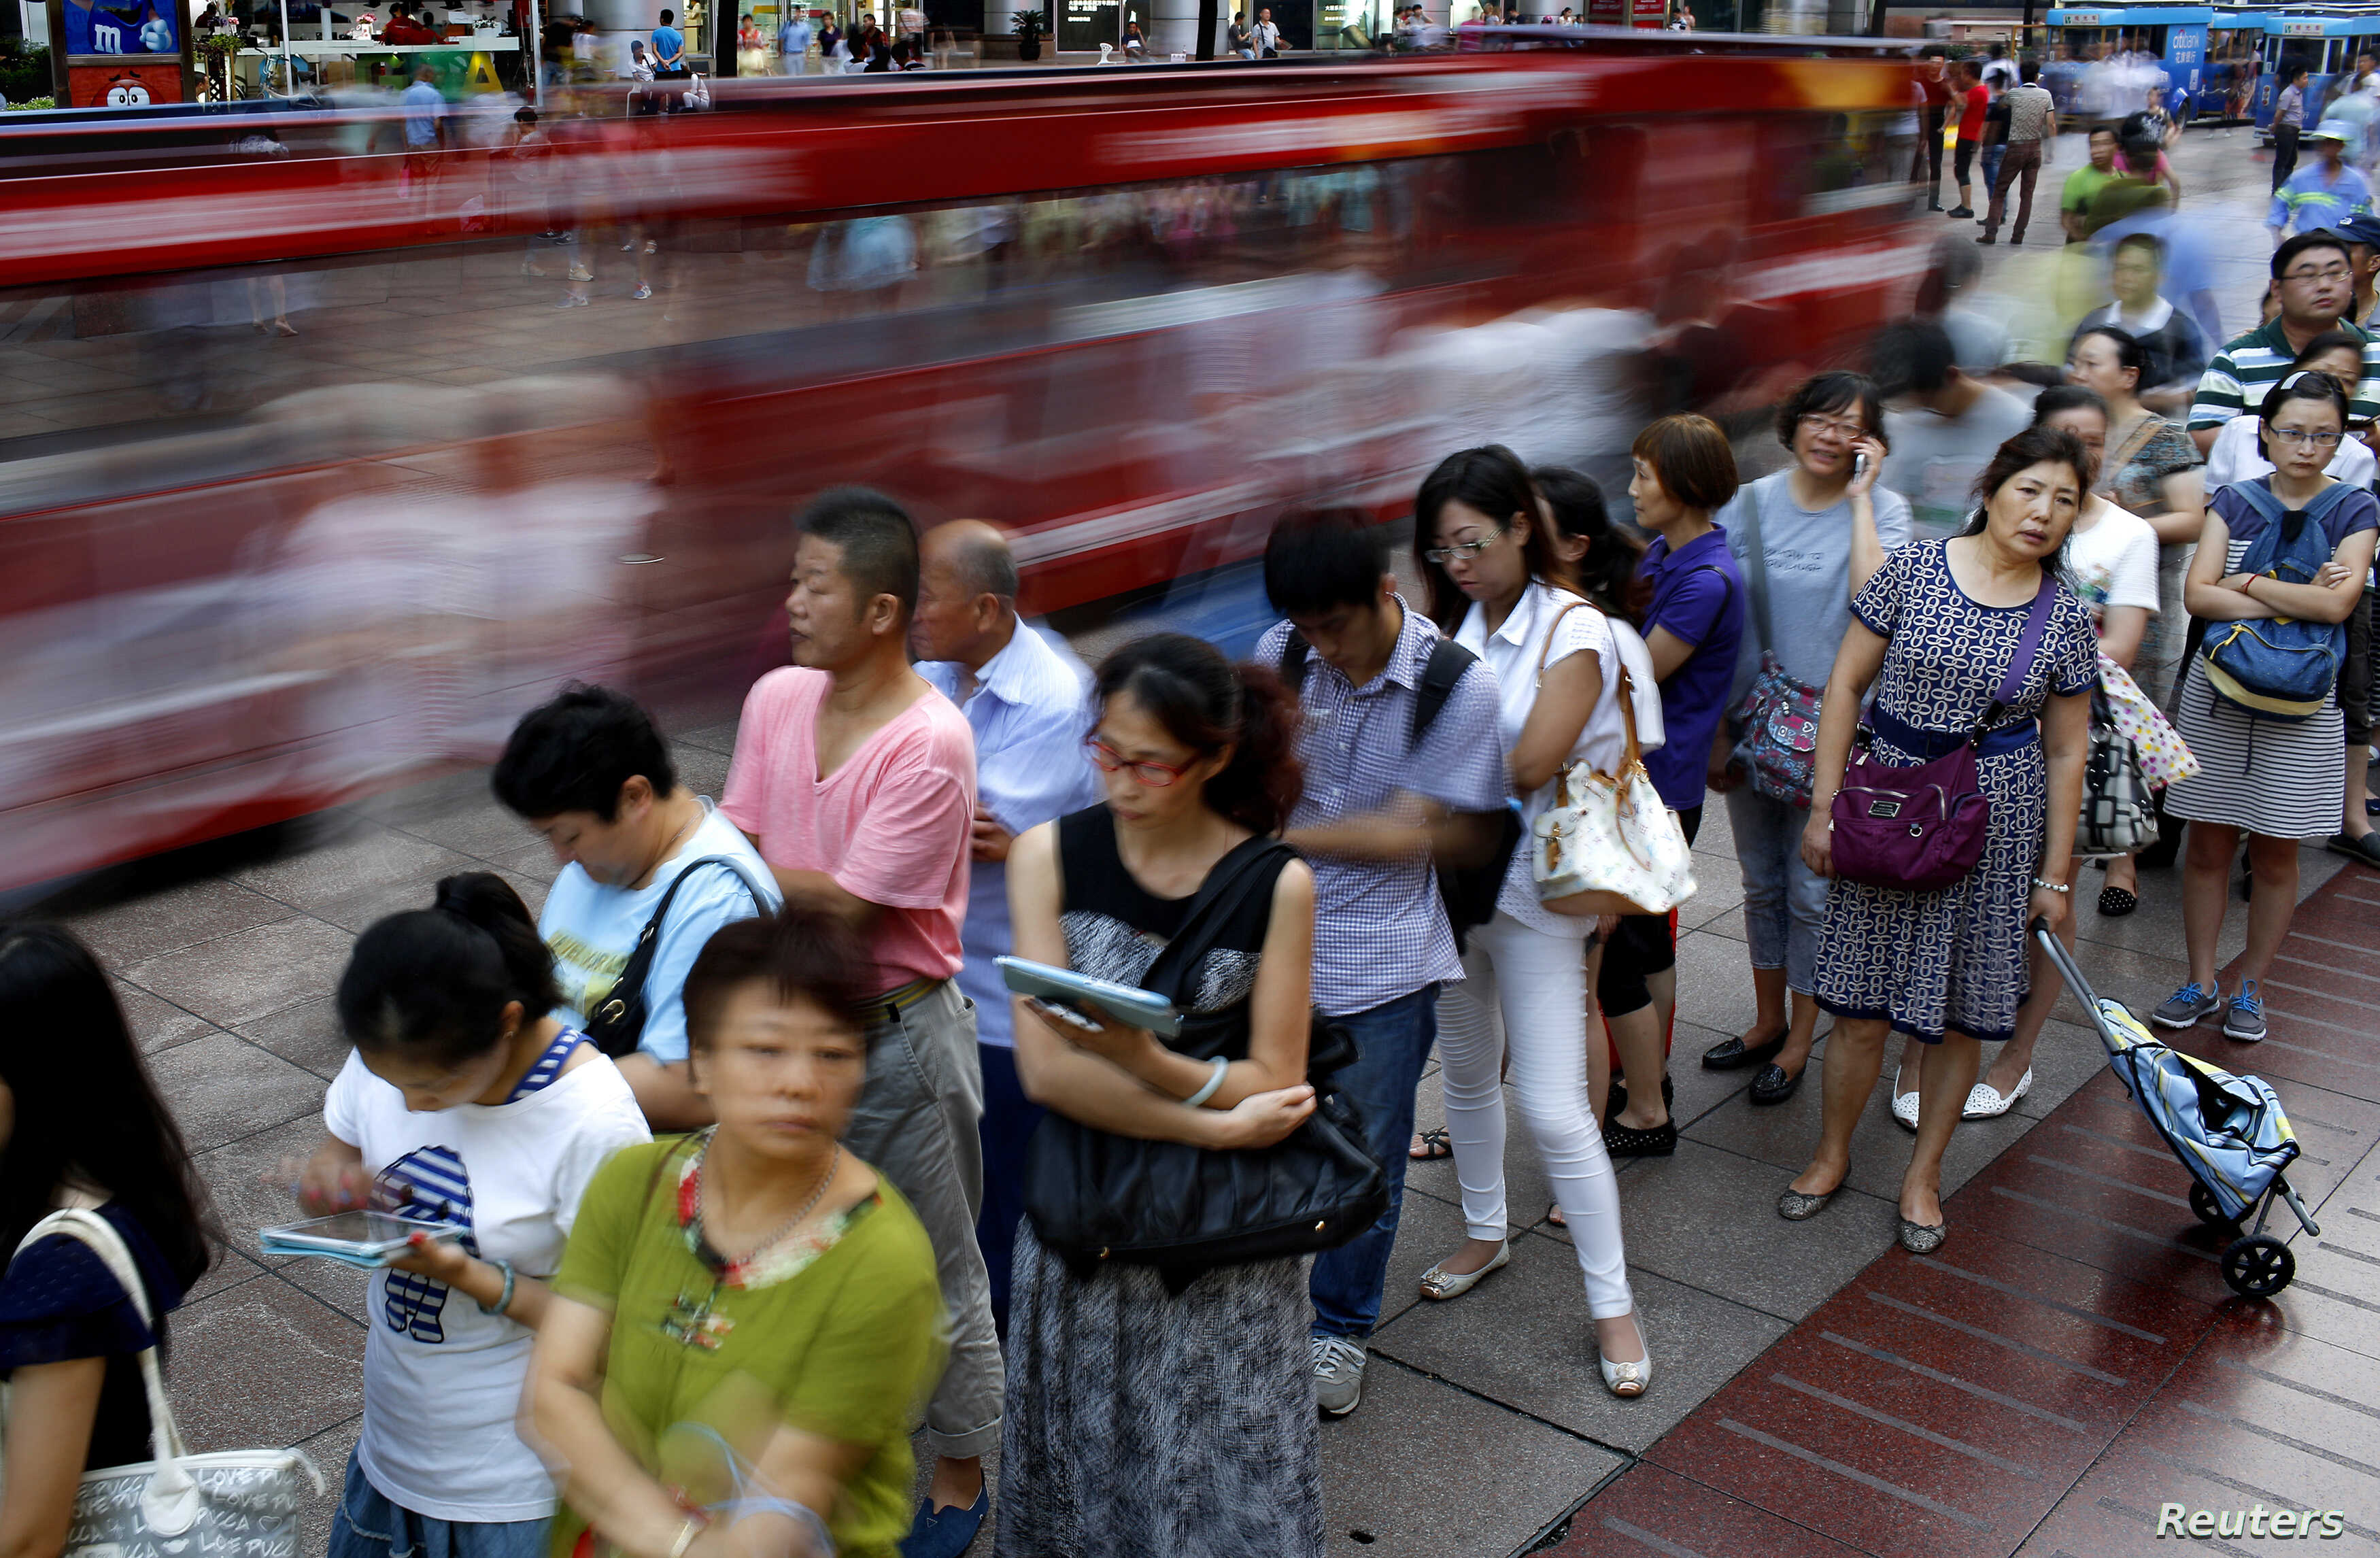 People wait in line to buy moon cakes, a Chinese traditional dish as part of the upcoming Mid-Autumn Festival in Shanghai, Sept. 5, 2014.